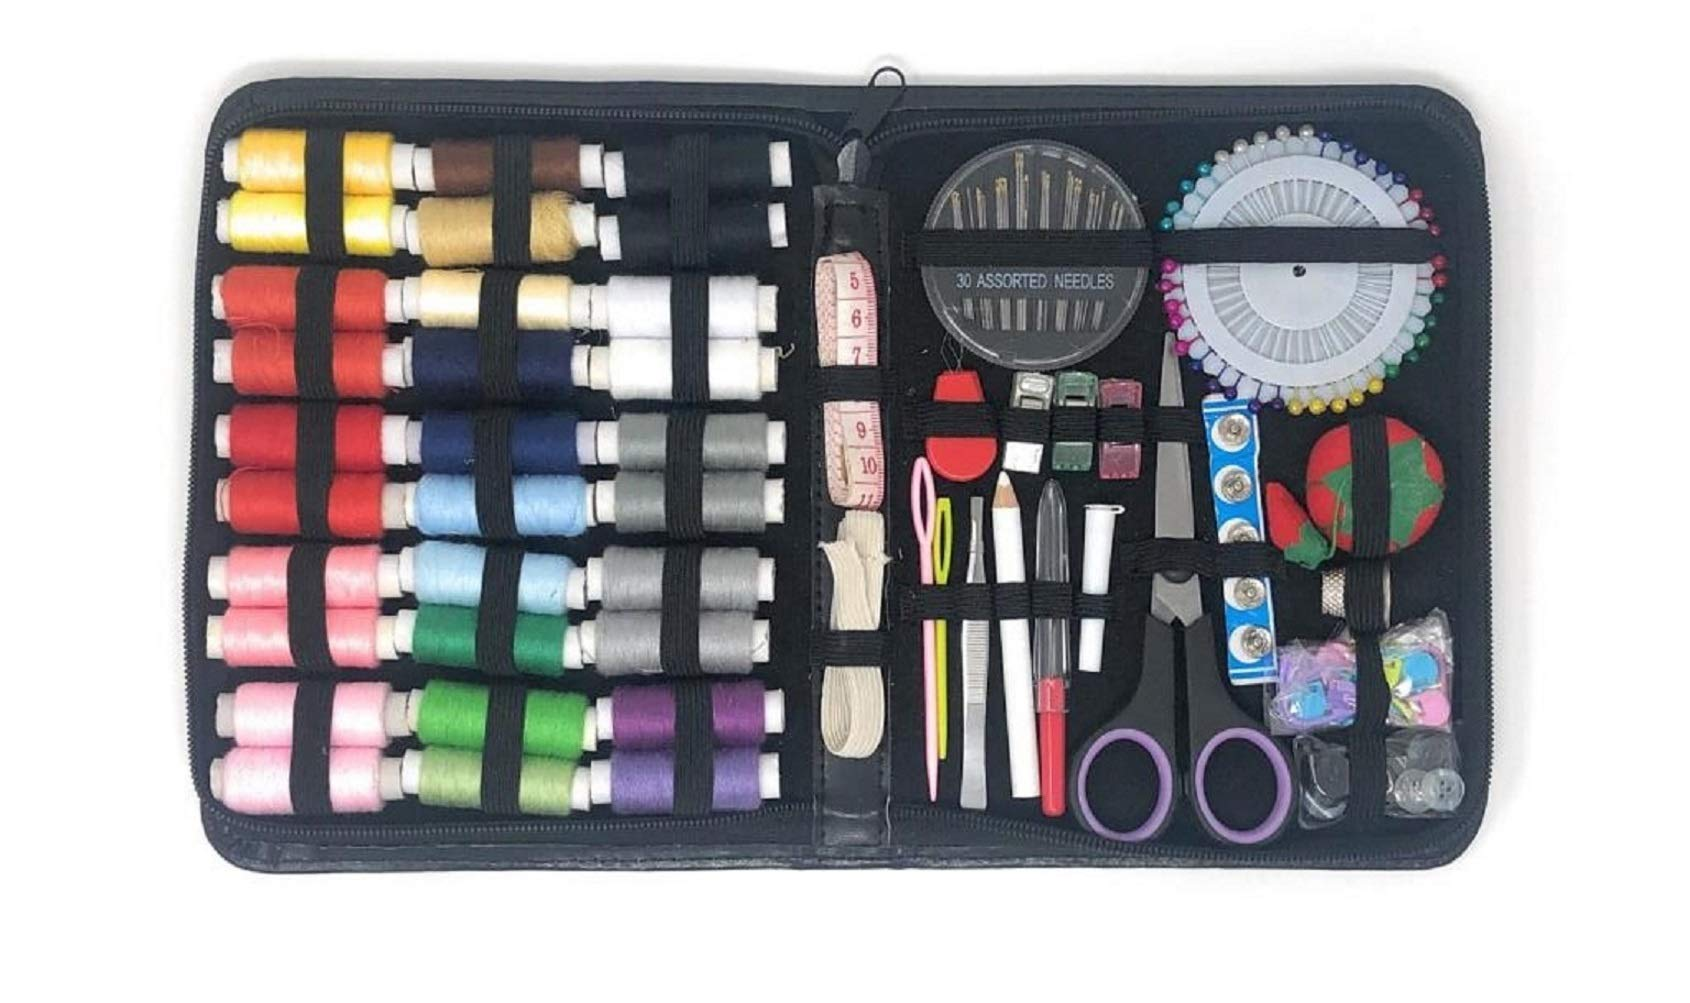 Compact Sewing Kit for Home Travel Camping and Emergency. Best Gift for Adults Kids Girls Beginners. Quality Premium Mini Sew Supplies Set. Expansive Case with 100 Extra Pins and Safety Pins (Large) by Sewing Gear